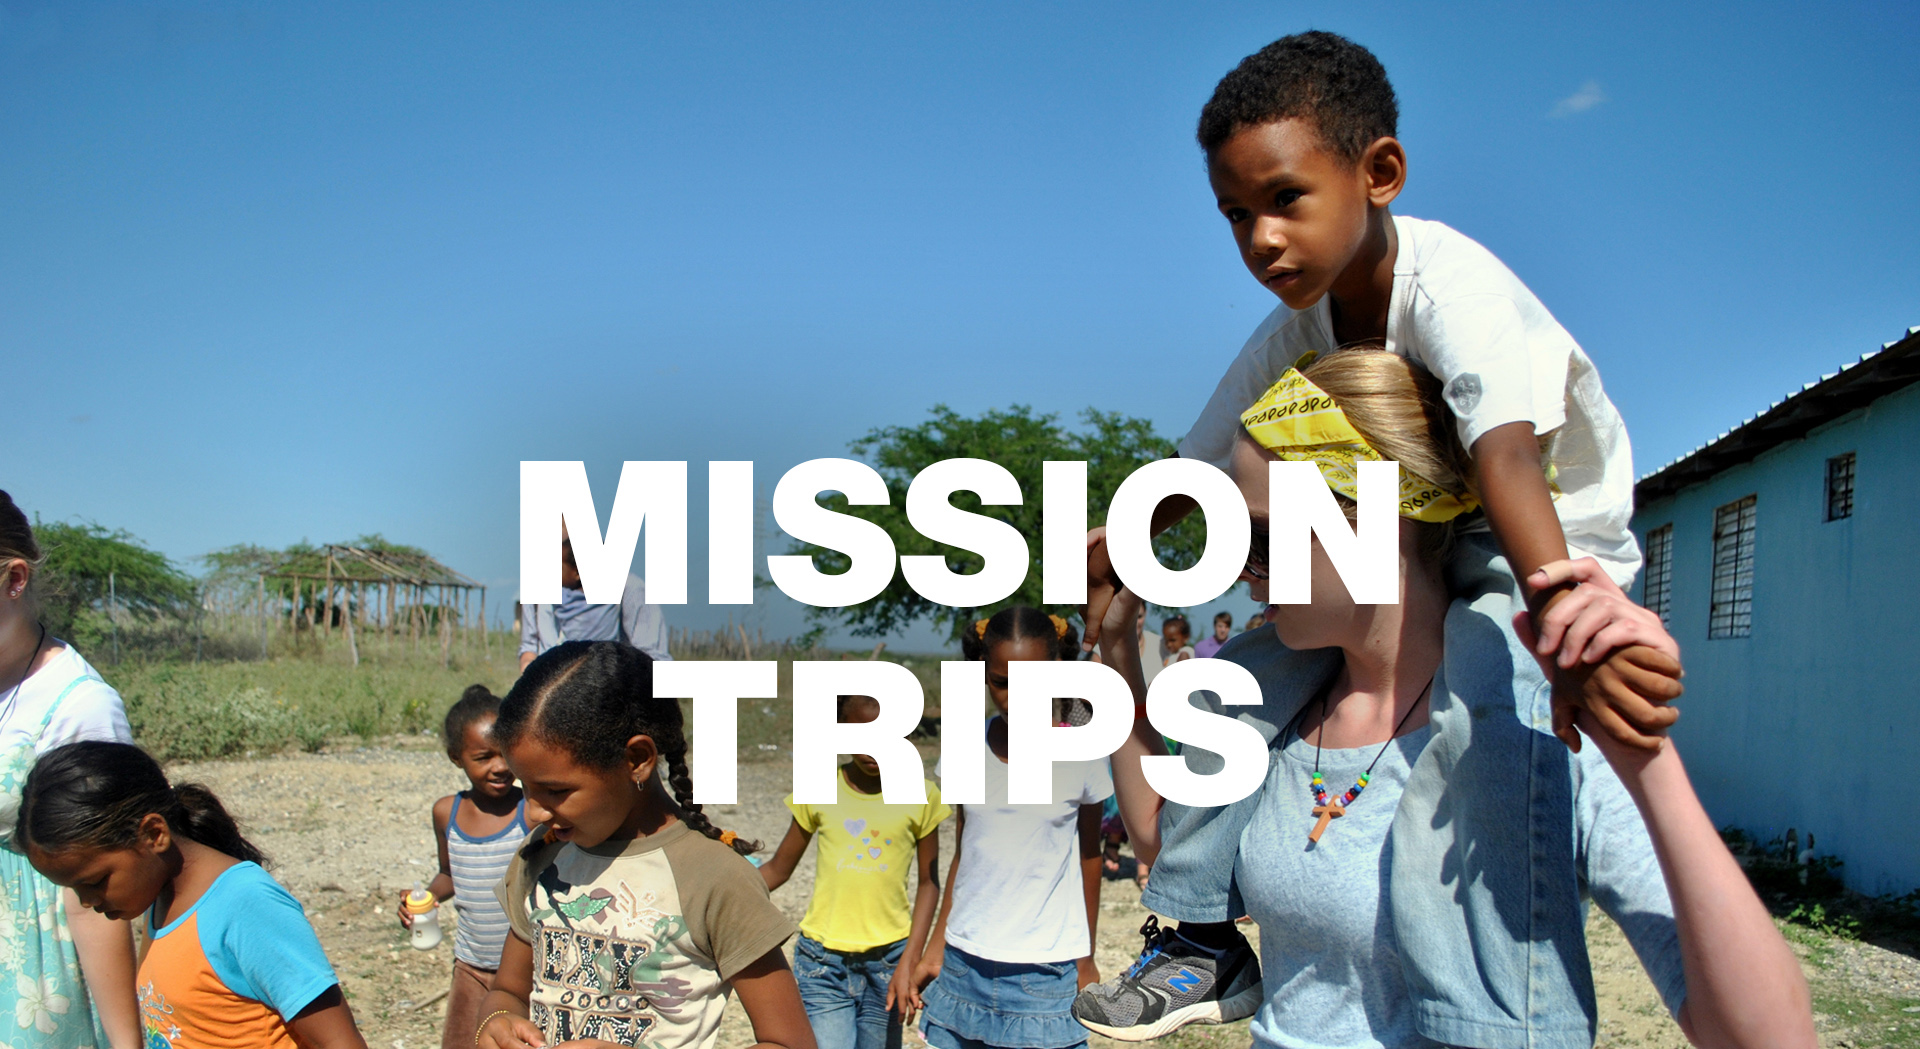 Child being carried during church Mission trip